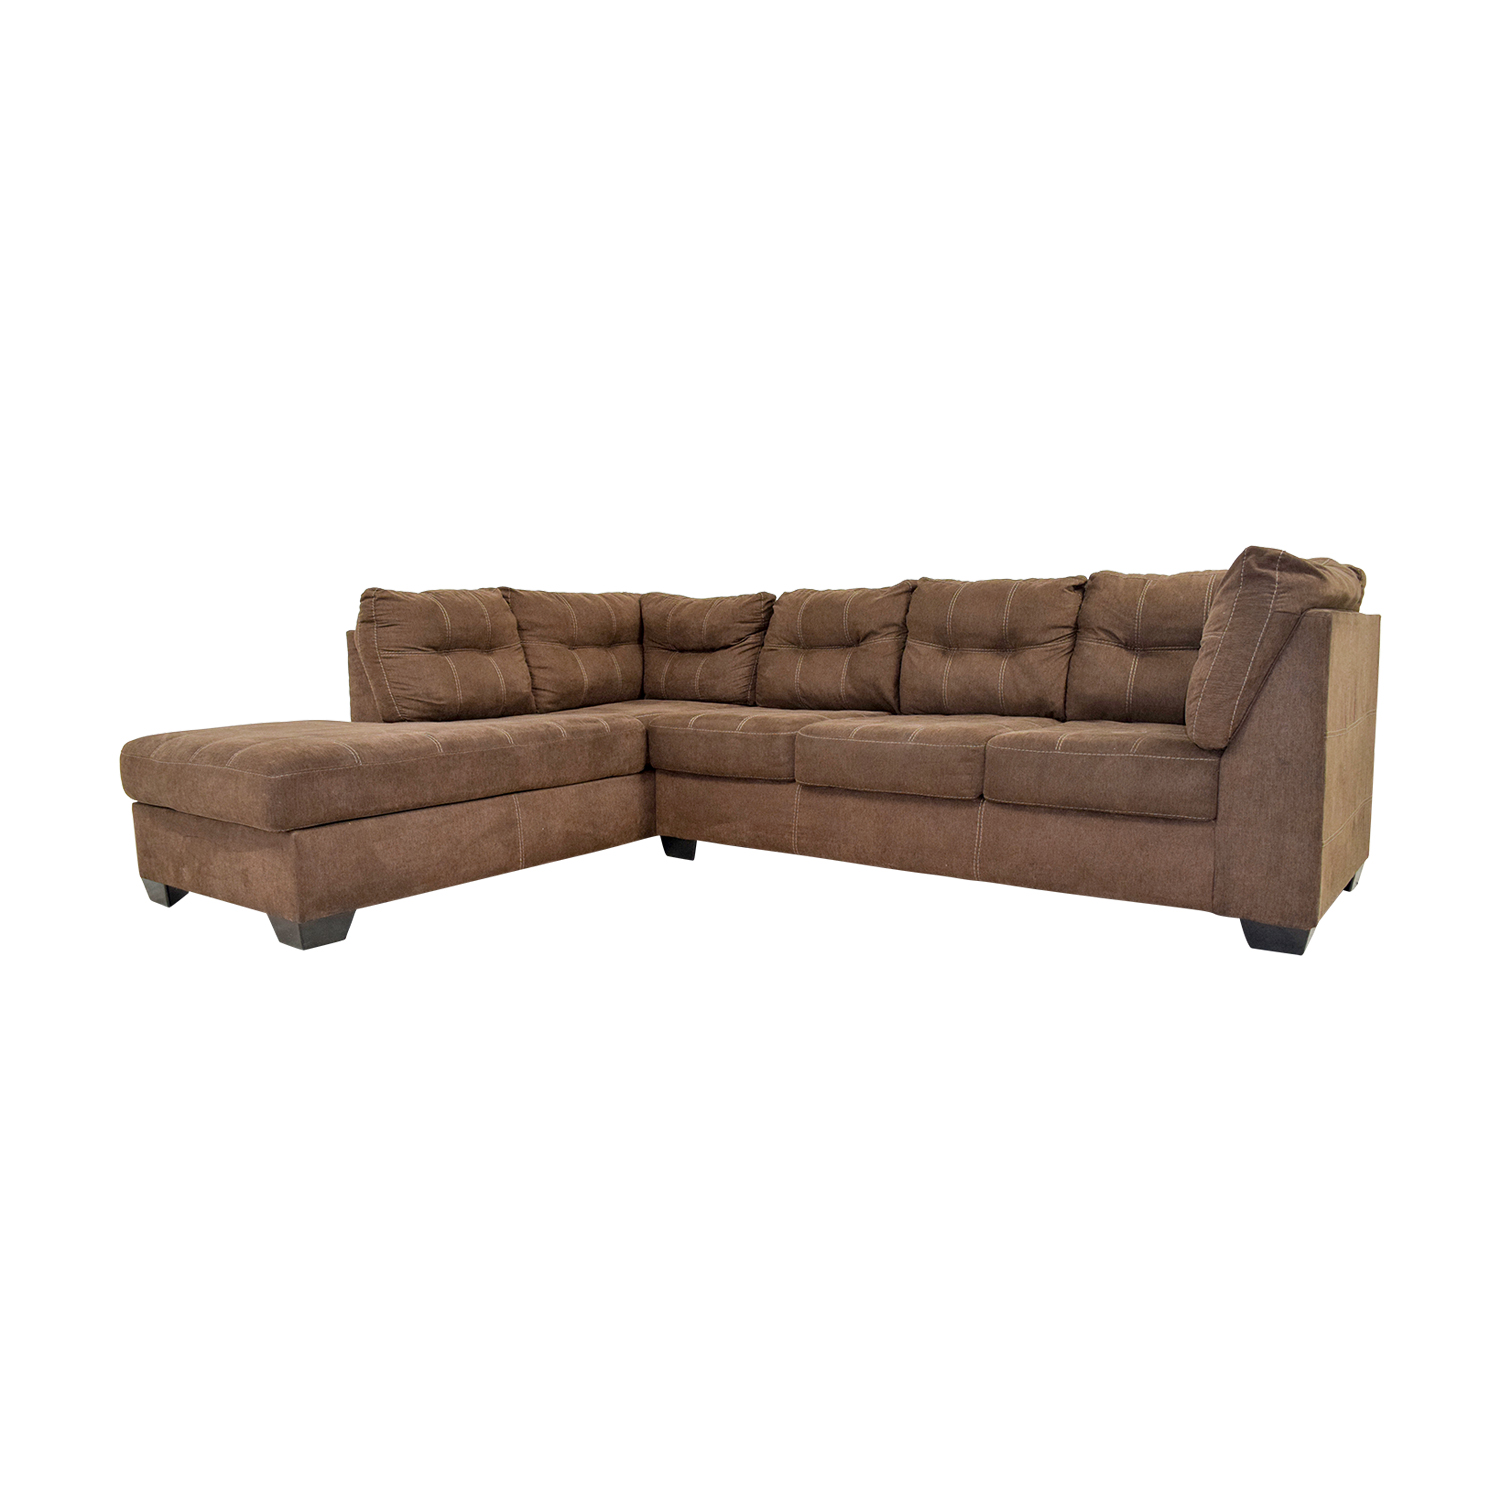 Brown L-Shaped Chaise Sectional Sofa nyc